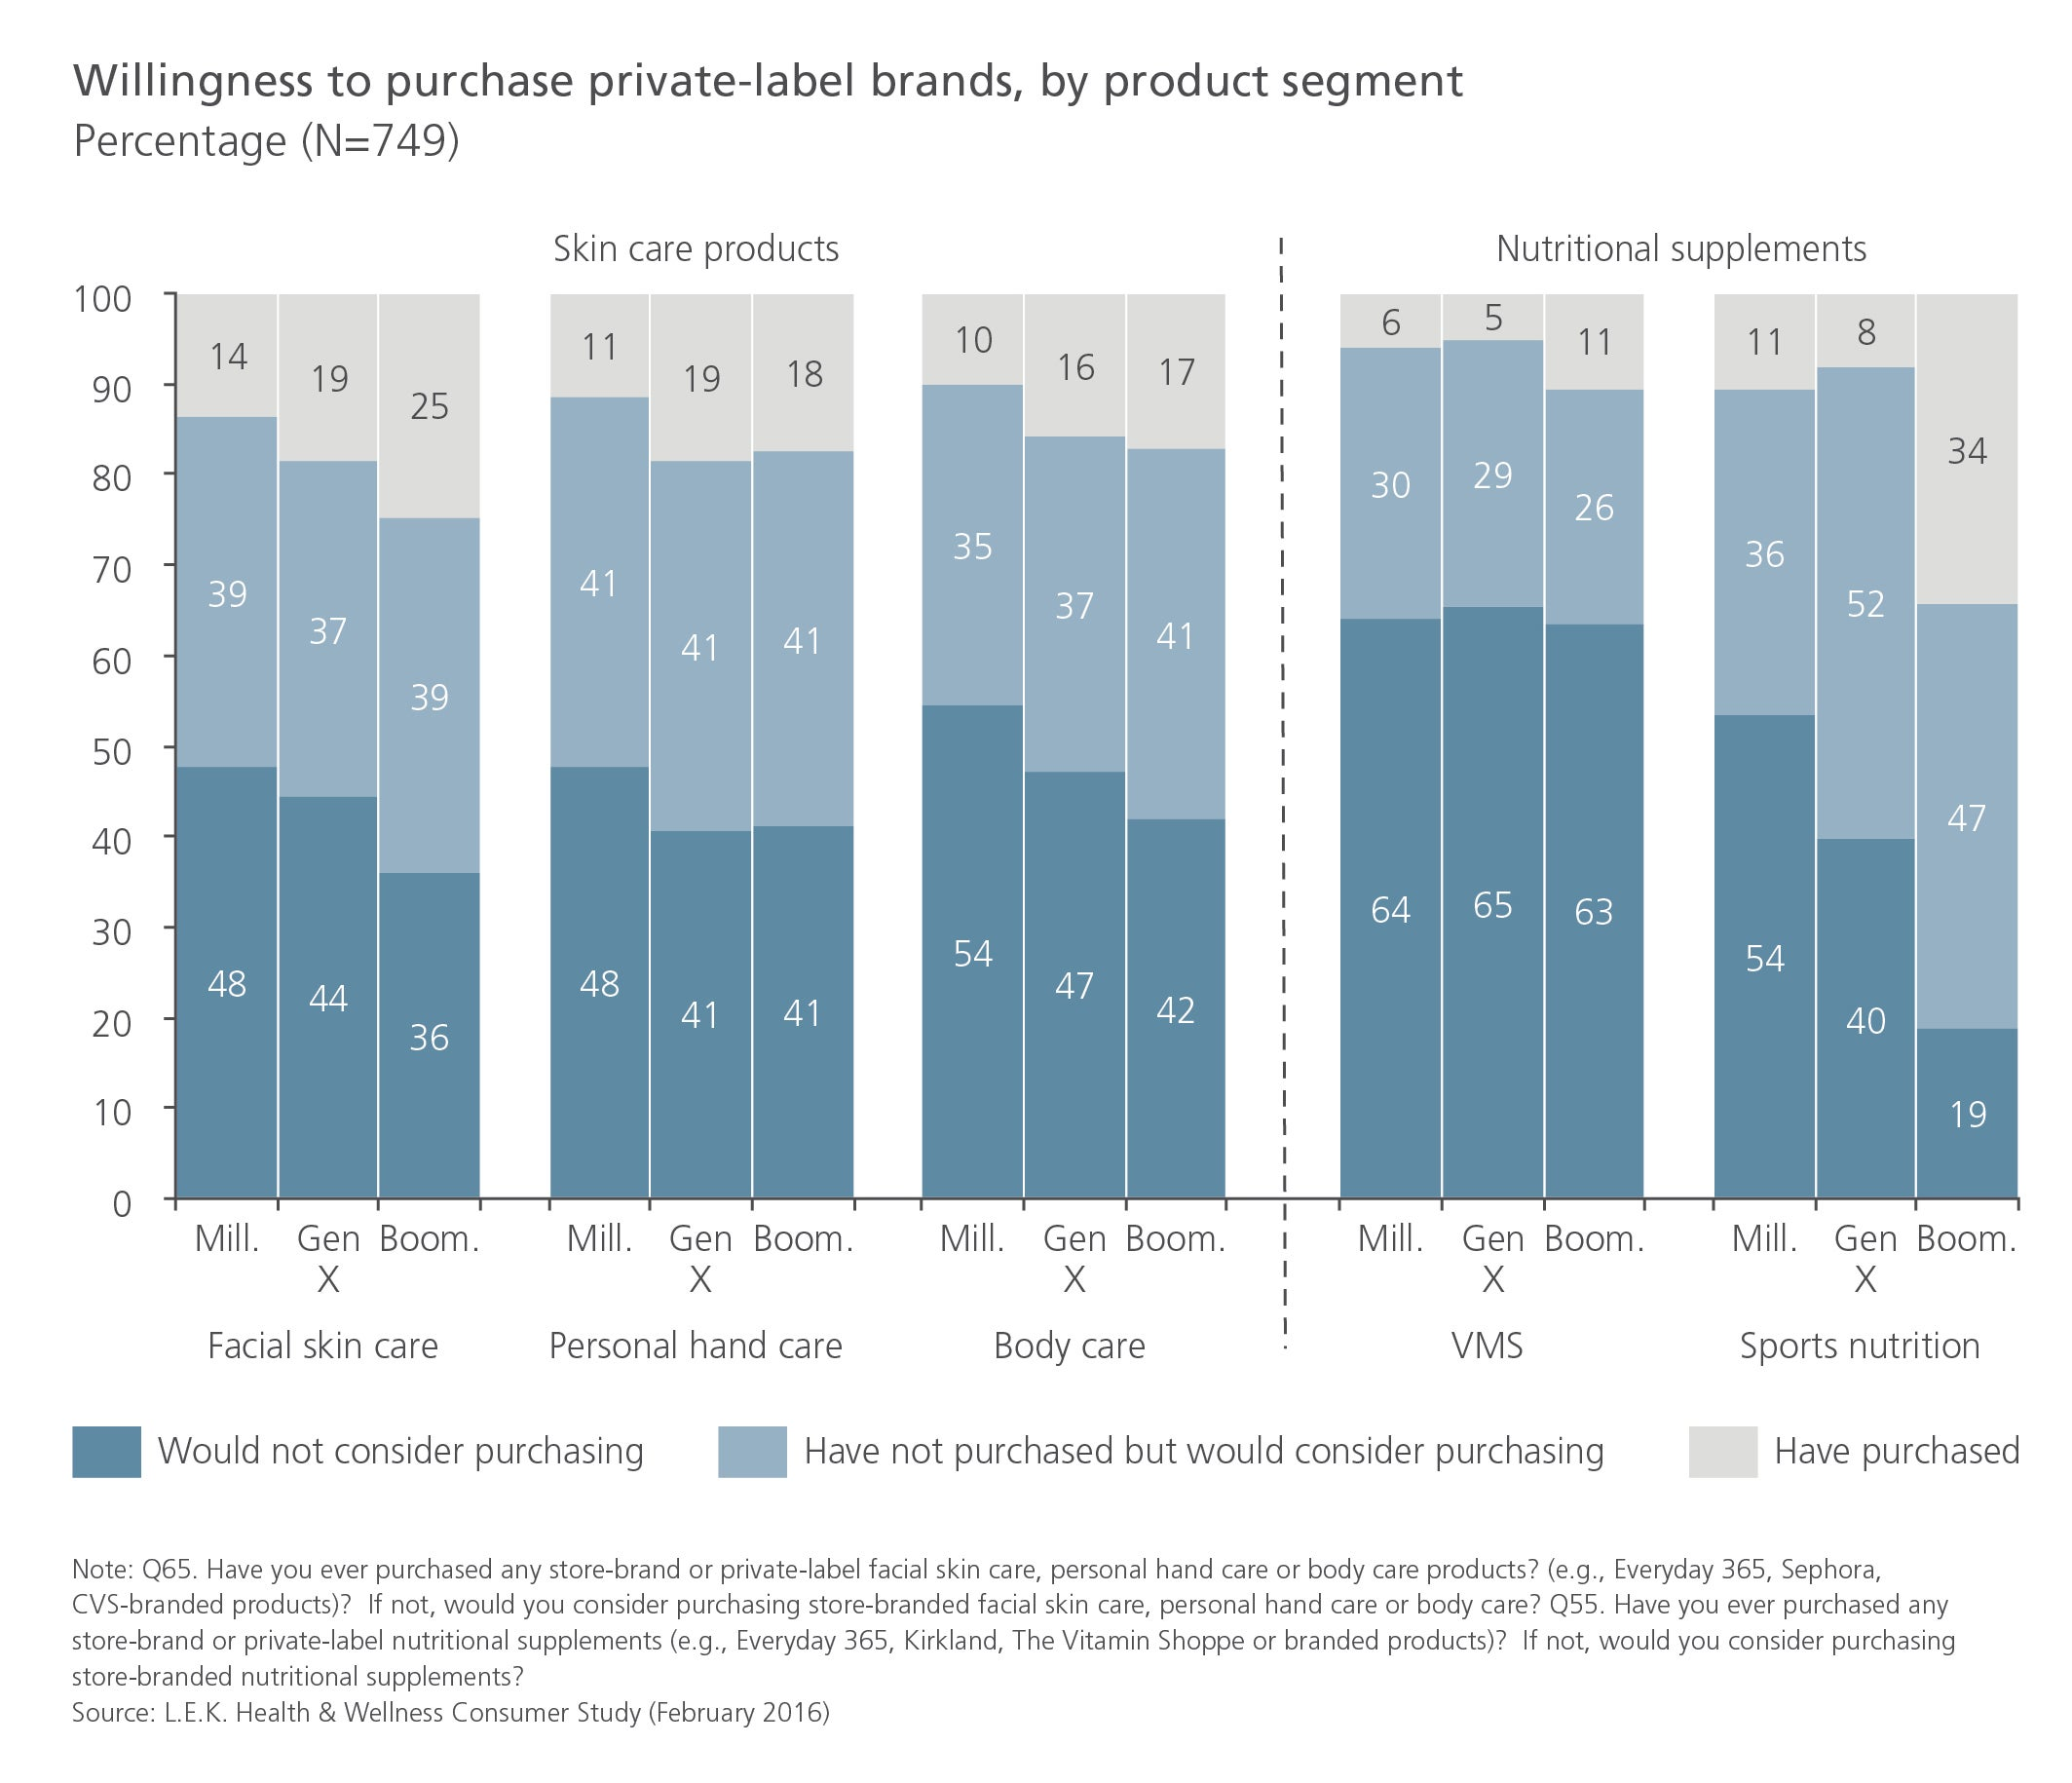 Willingness to purchase private-label brands, by product segment